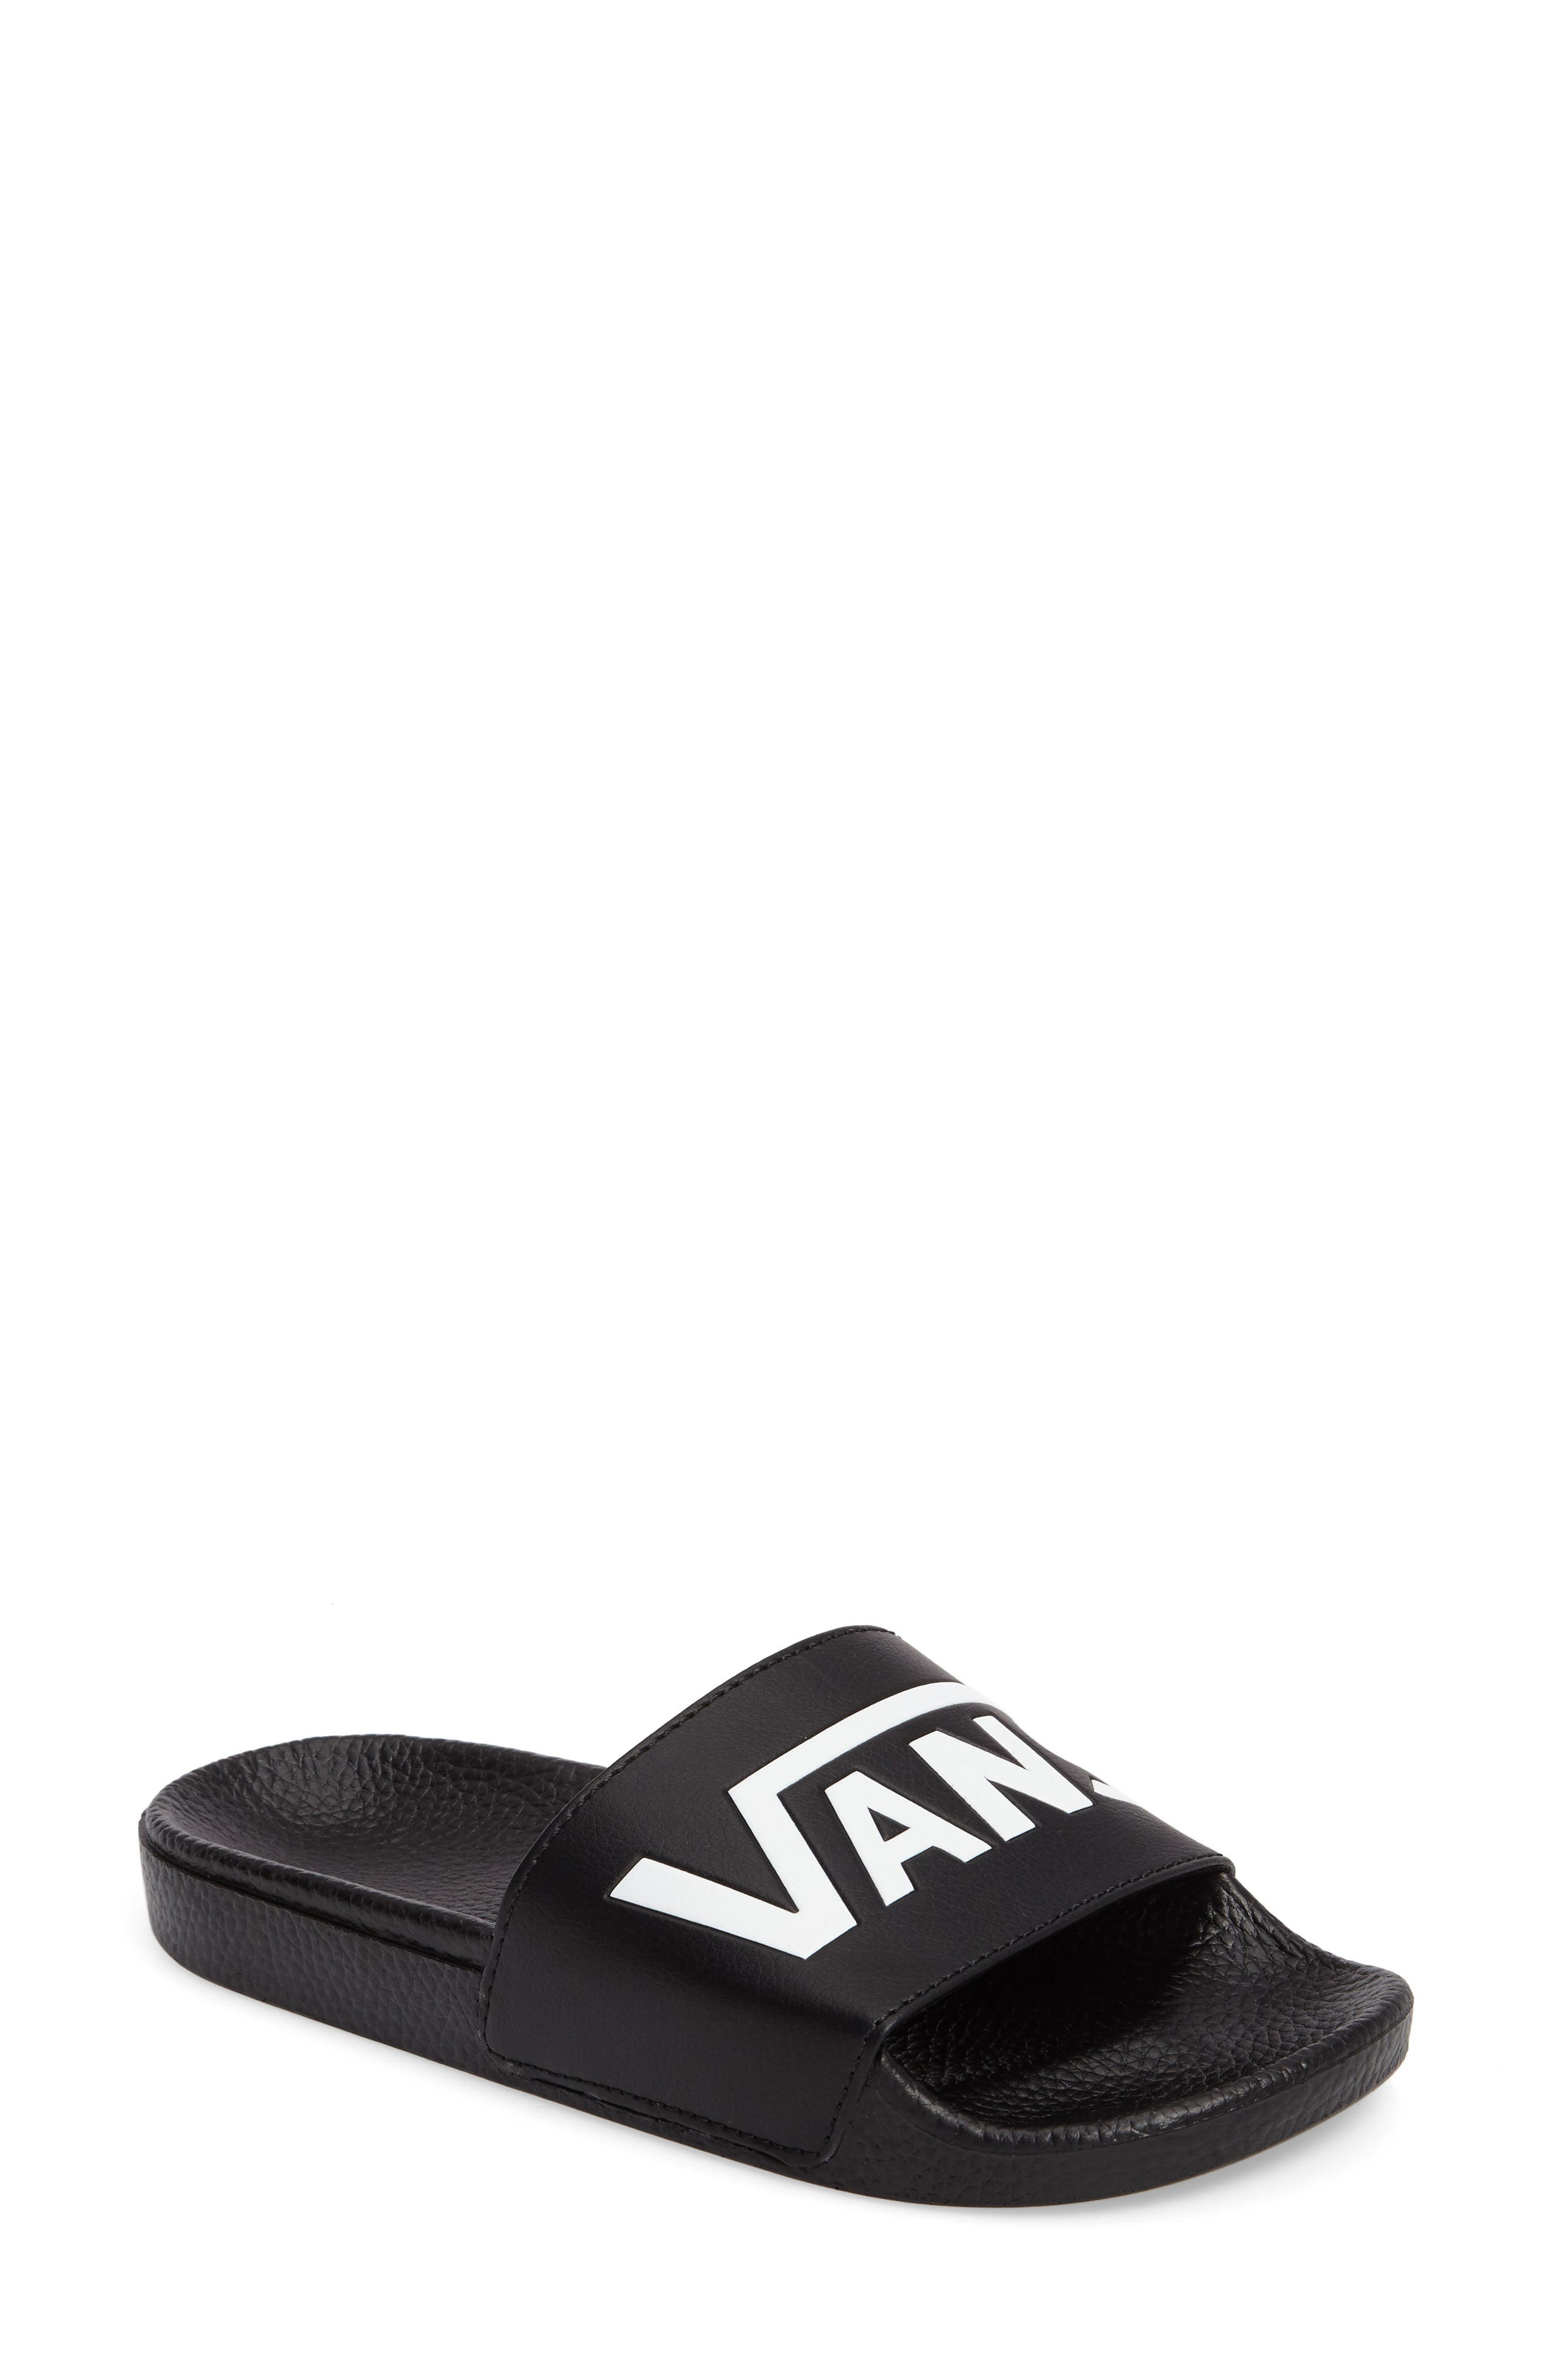 Alternate Image 1 Selected - Vans Slide-On Sandal (Women)